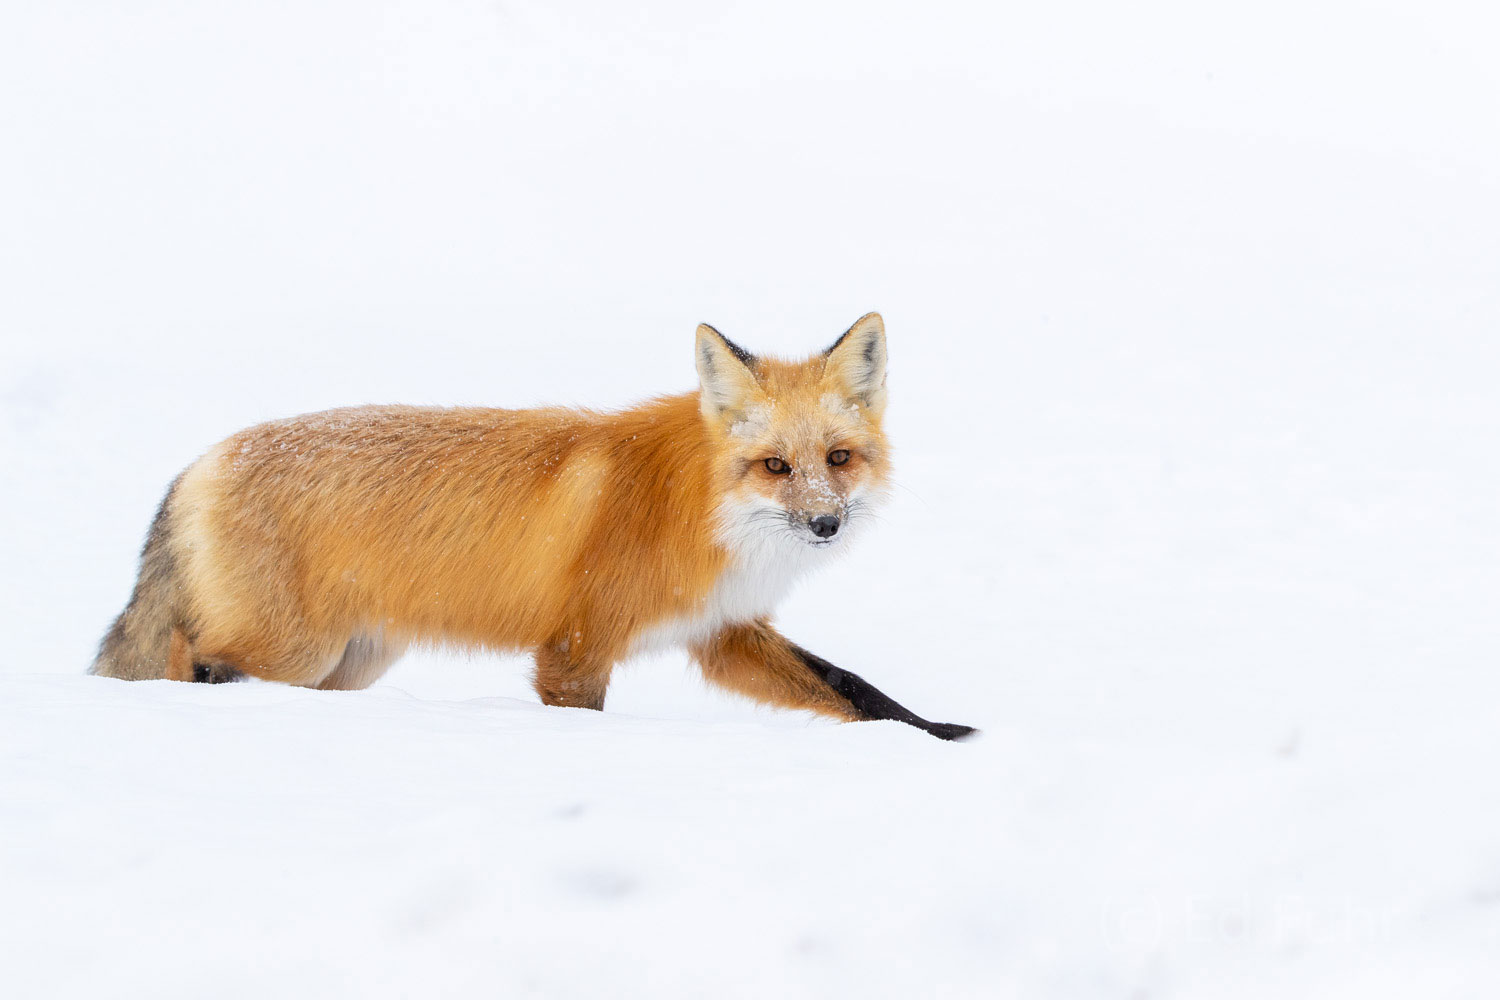 Light afoot, this fox makes his way across the deep snows of this meadow in Grand Teton National Park.